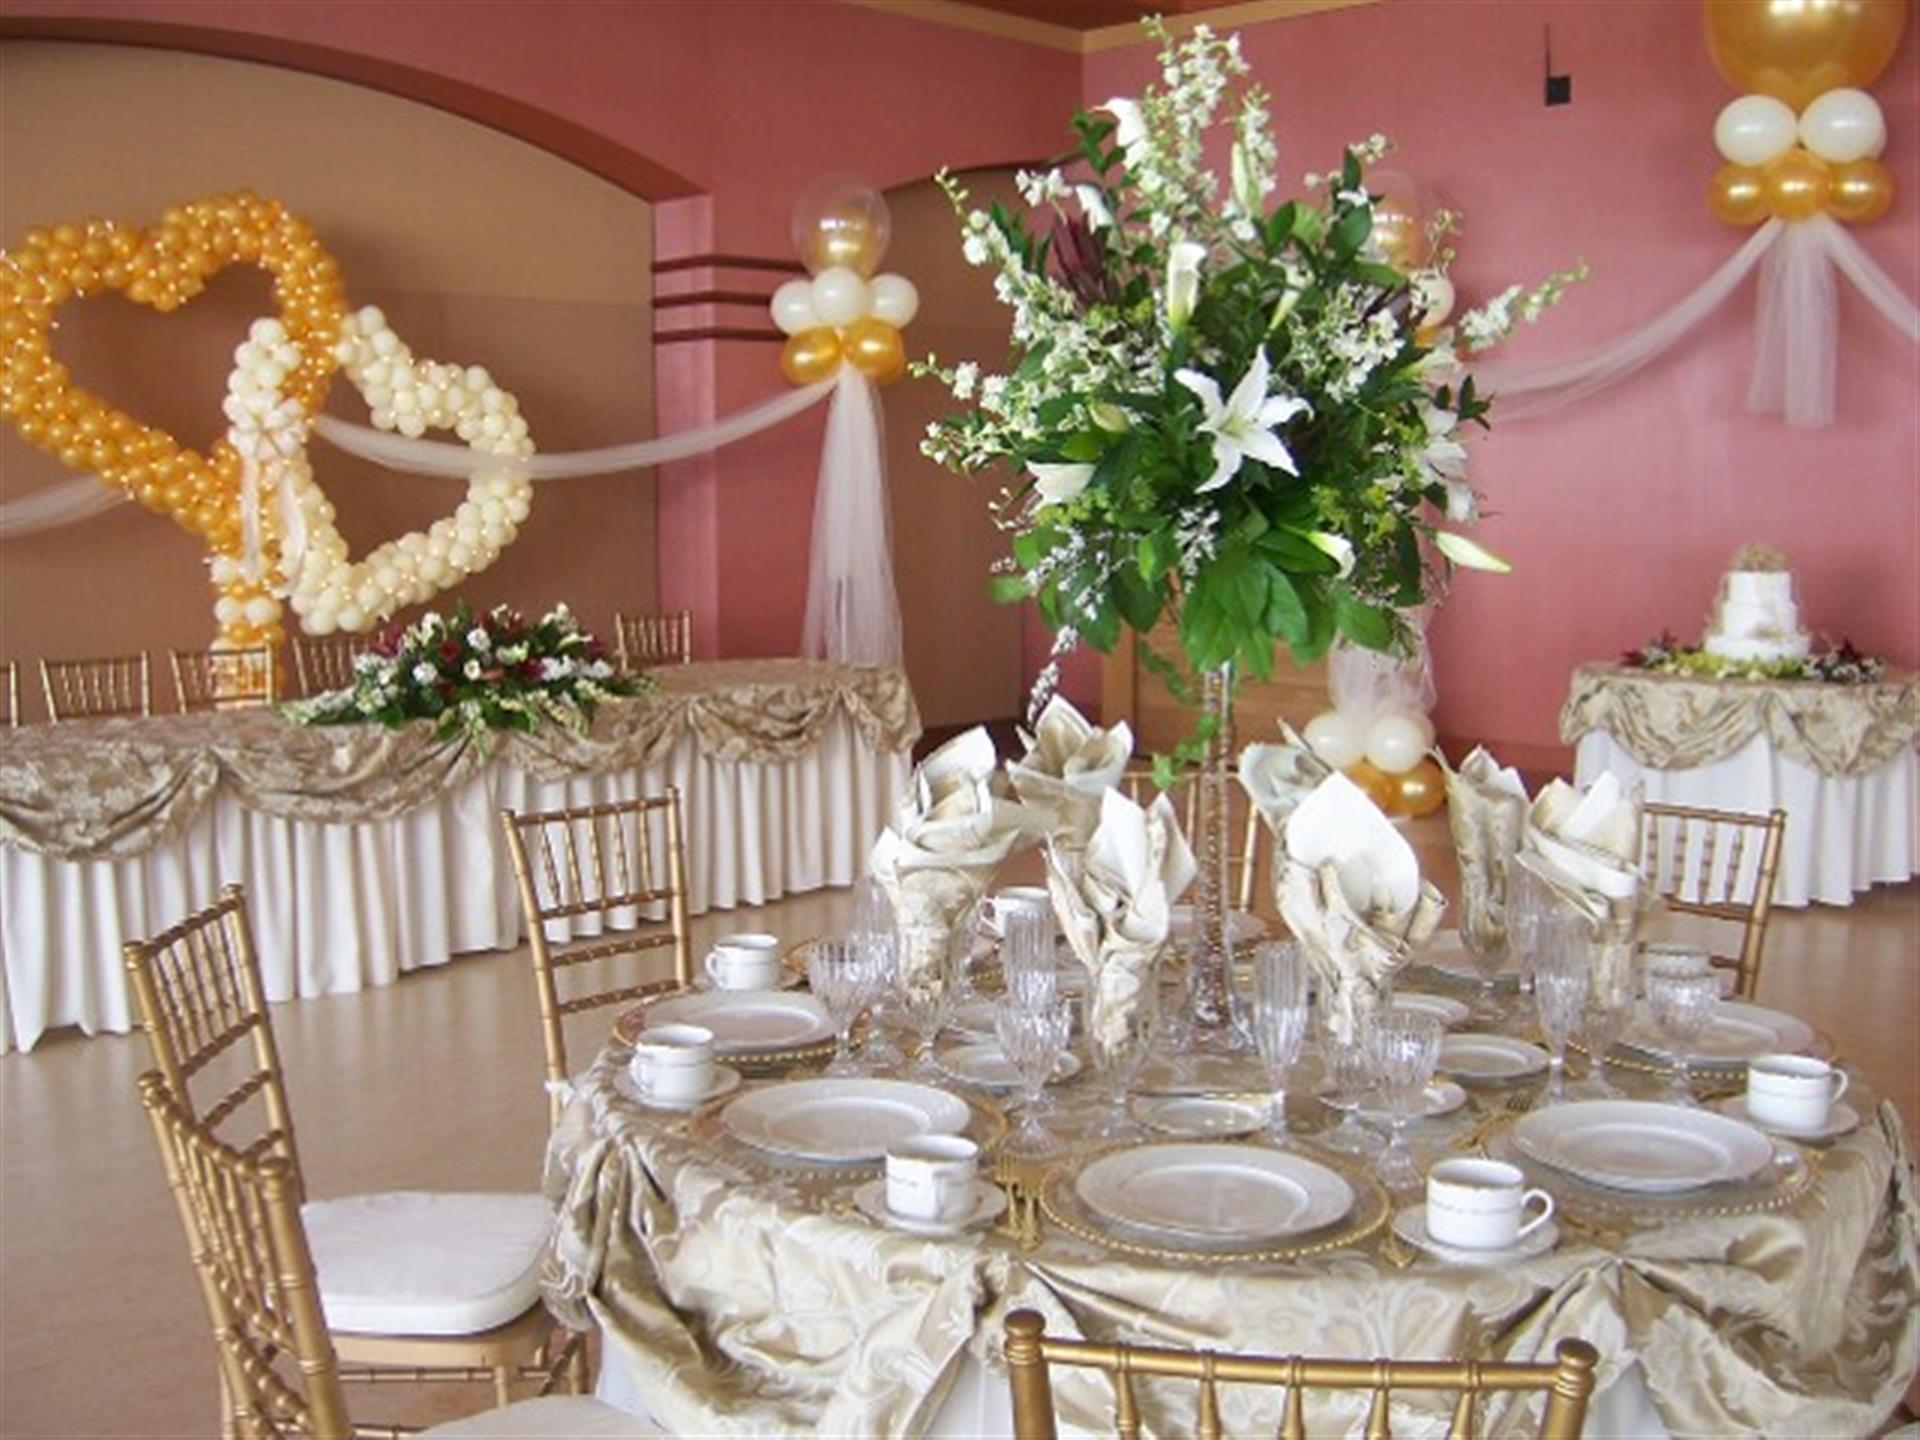 White table setting with gold chairs. Balloons of gold and white formed to make hearts.